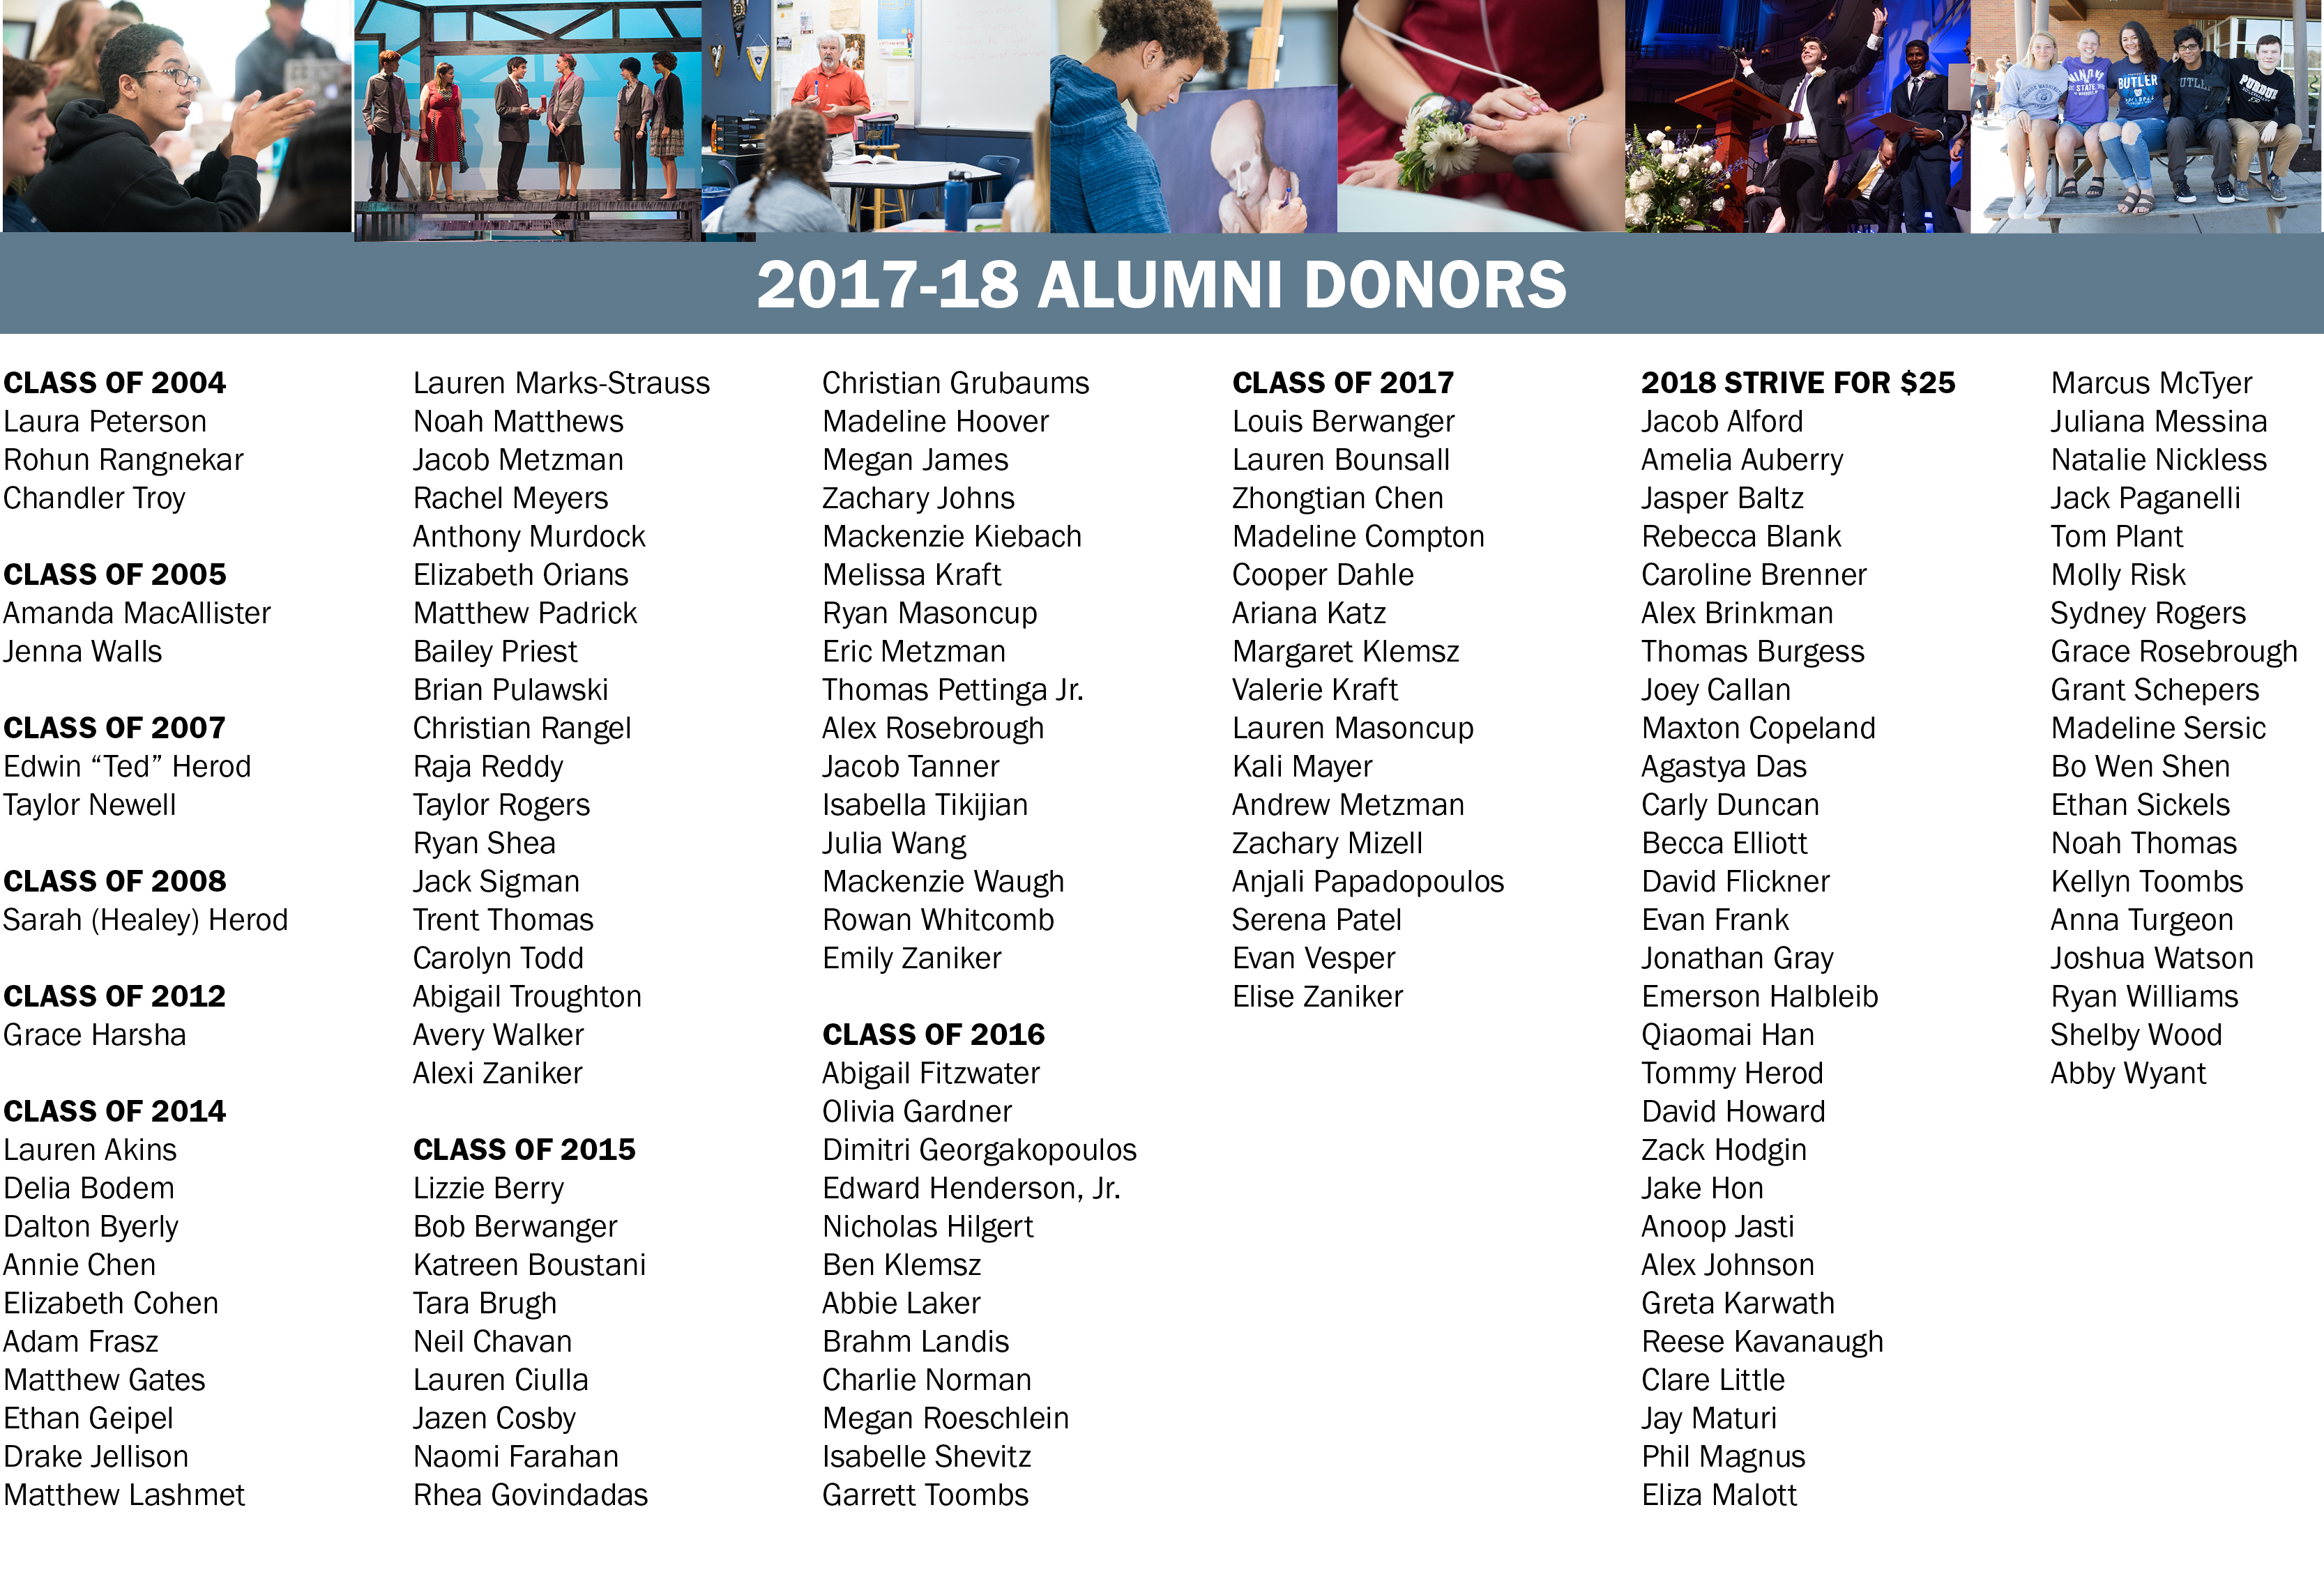 Alumni Donor List